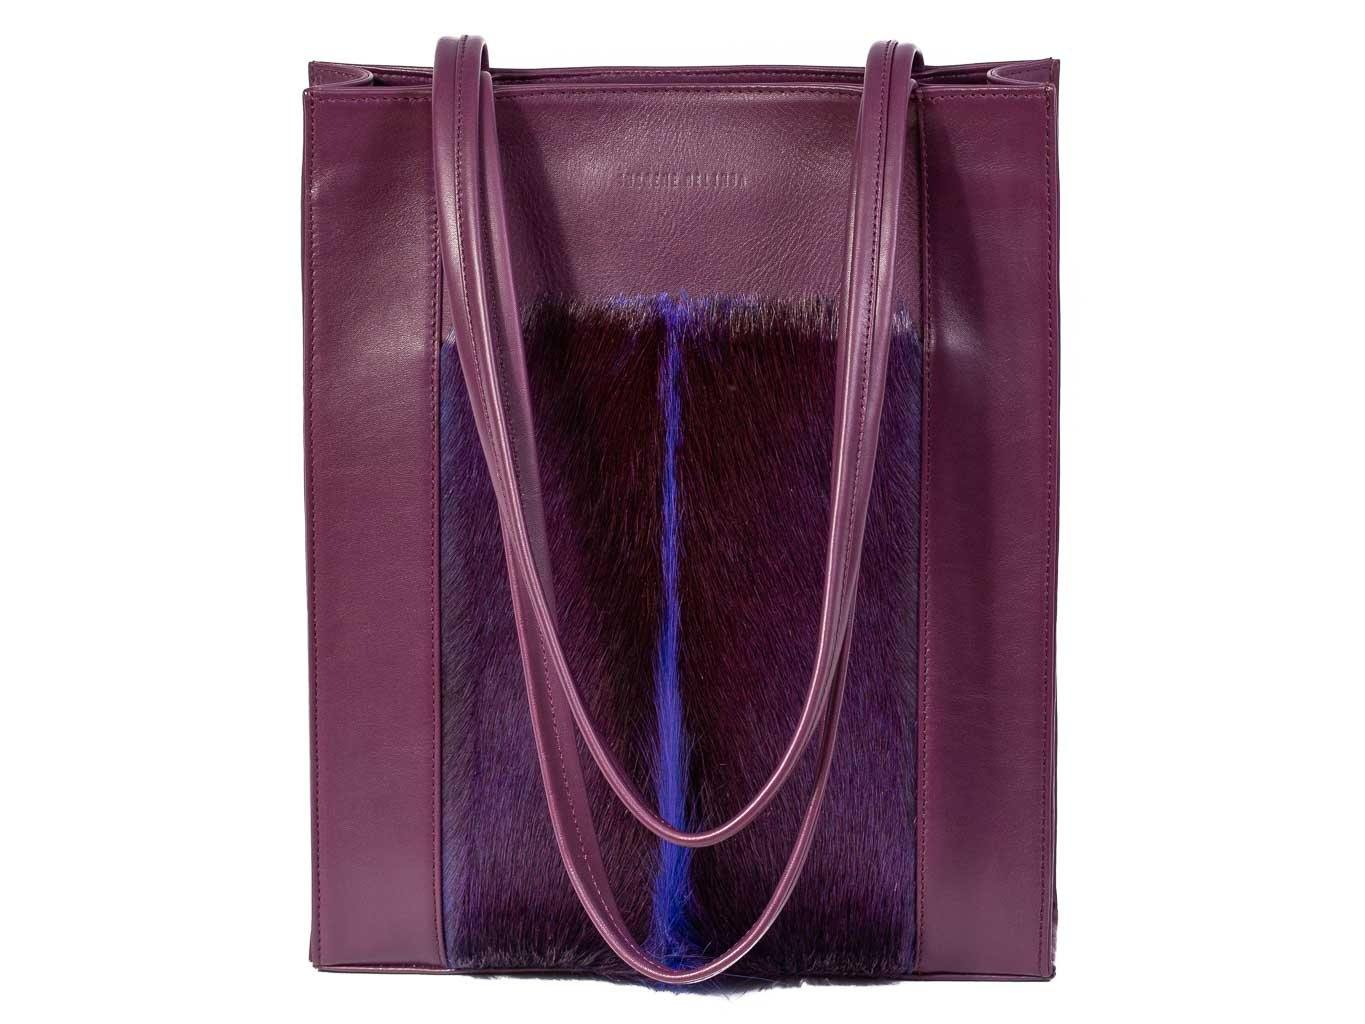 Tote Springbok Handbag in Deep Purple with a fan feature by Sherene Melinda front handle